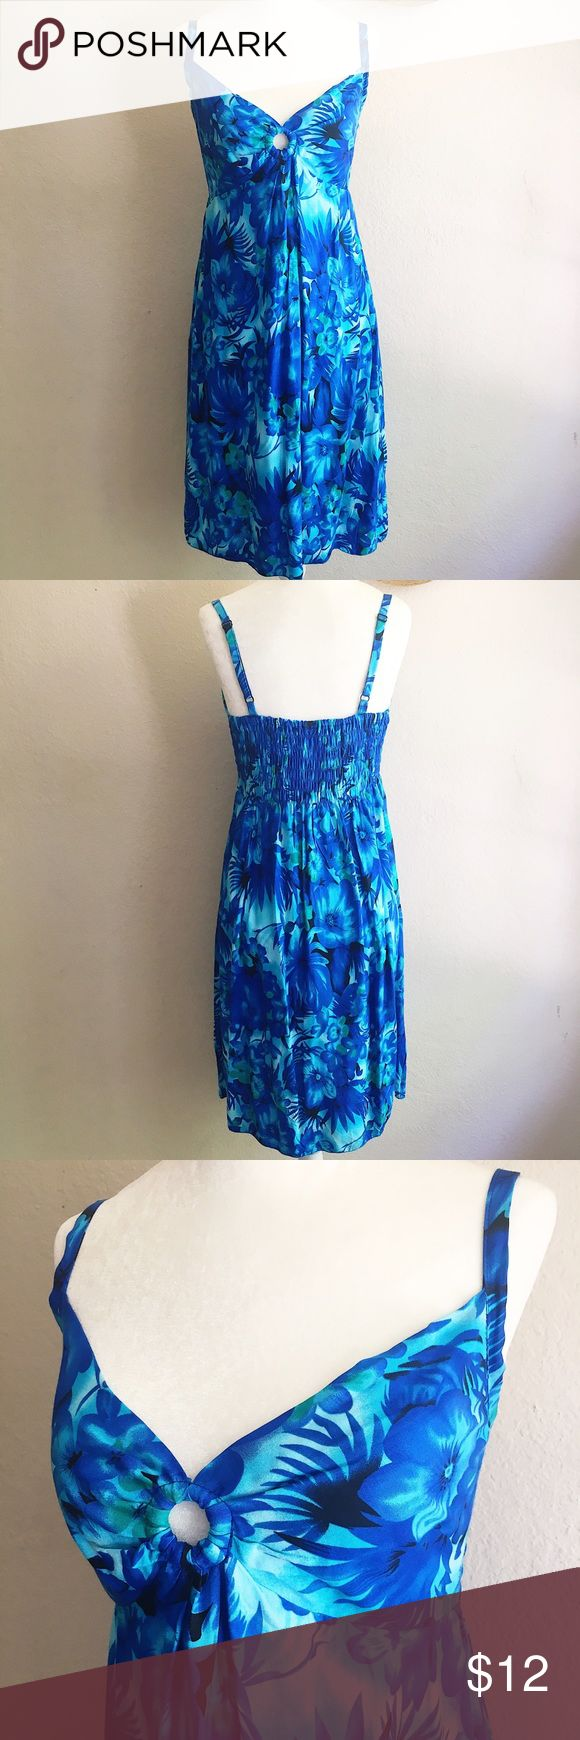 Tropical Blue Beach Dress Island Planet brand bright blue floral beach dress with adjustable spaghetti straps, ring detail at bust, and smocked back. It's a one size fits all, but fits most like a small (the dress form in the pics is a size small). 100% rayon. Ends at or just below the knee. Machine wash, lay flat to dry. In excellent used condition. No stains, holes, pilling, or fading. Swim Coverups